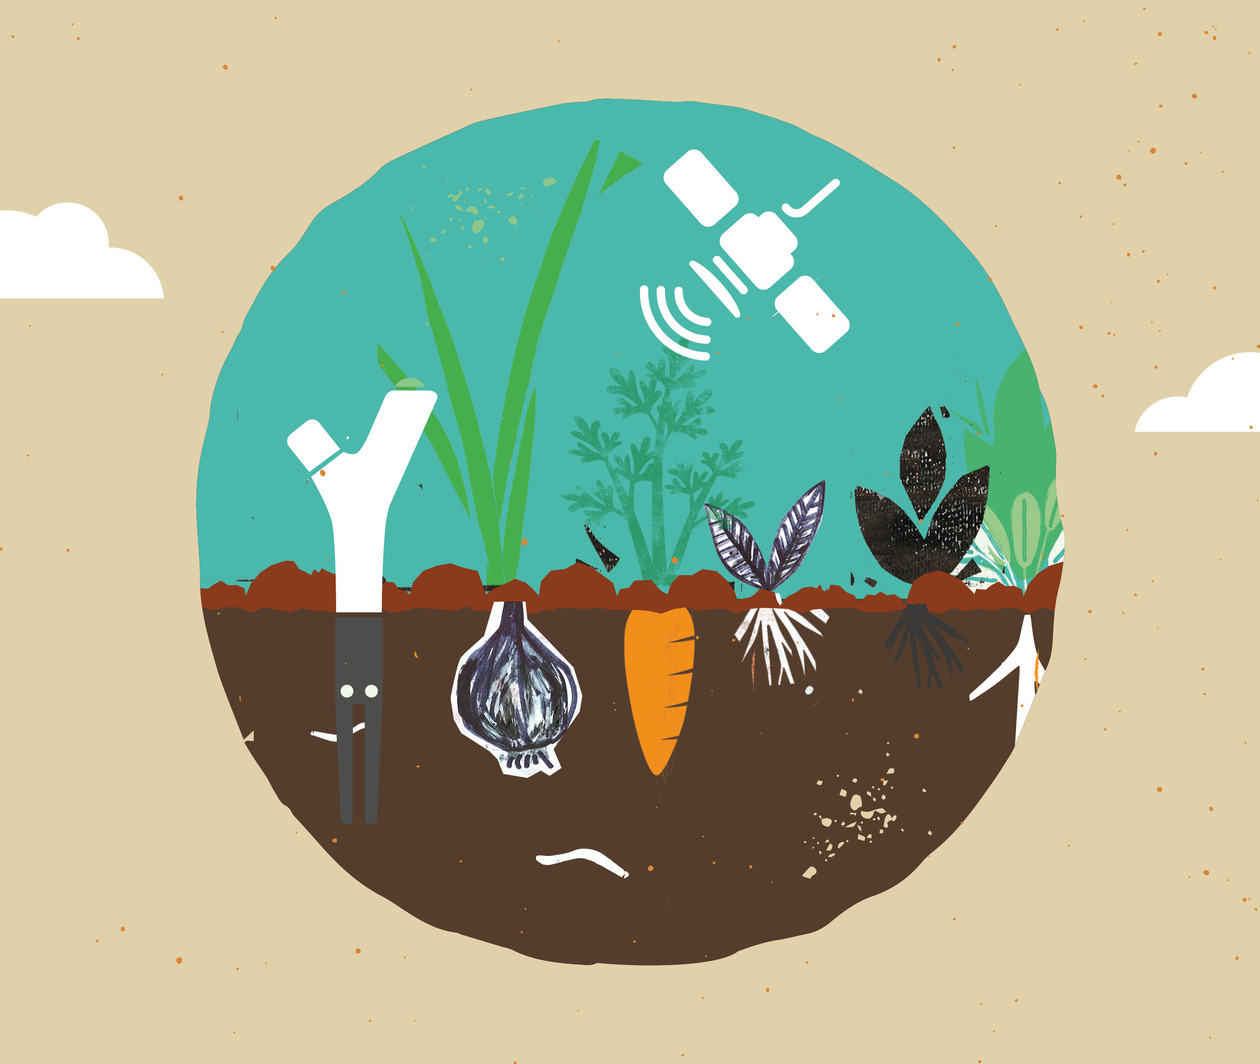 Citizen Science: From Soil to Sky